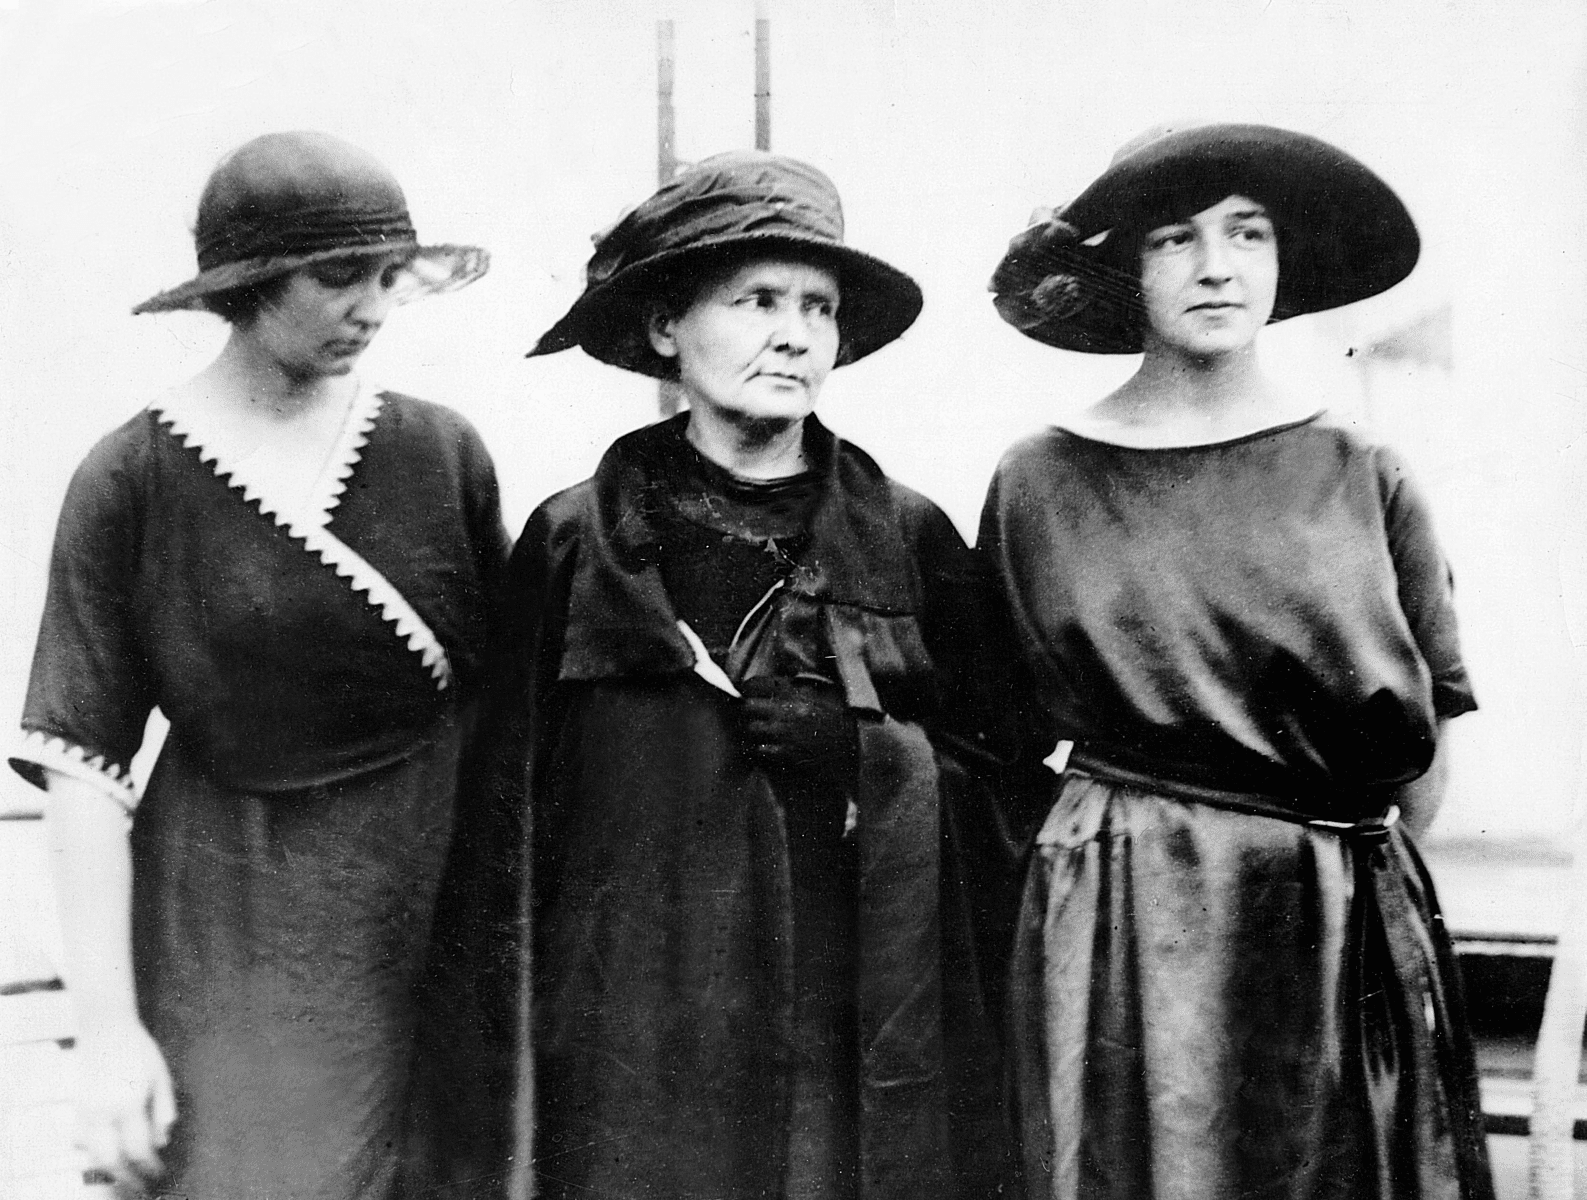 Marie Curie in America with Daughters Eve and Irene, 1921